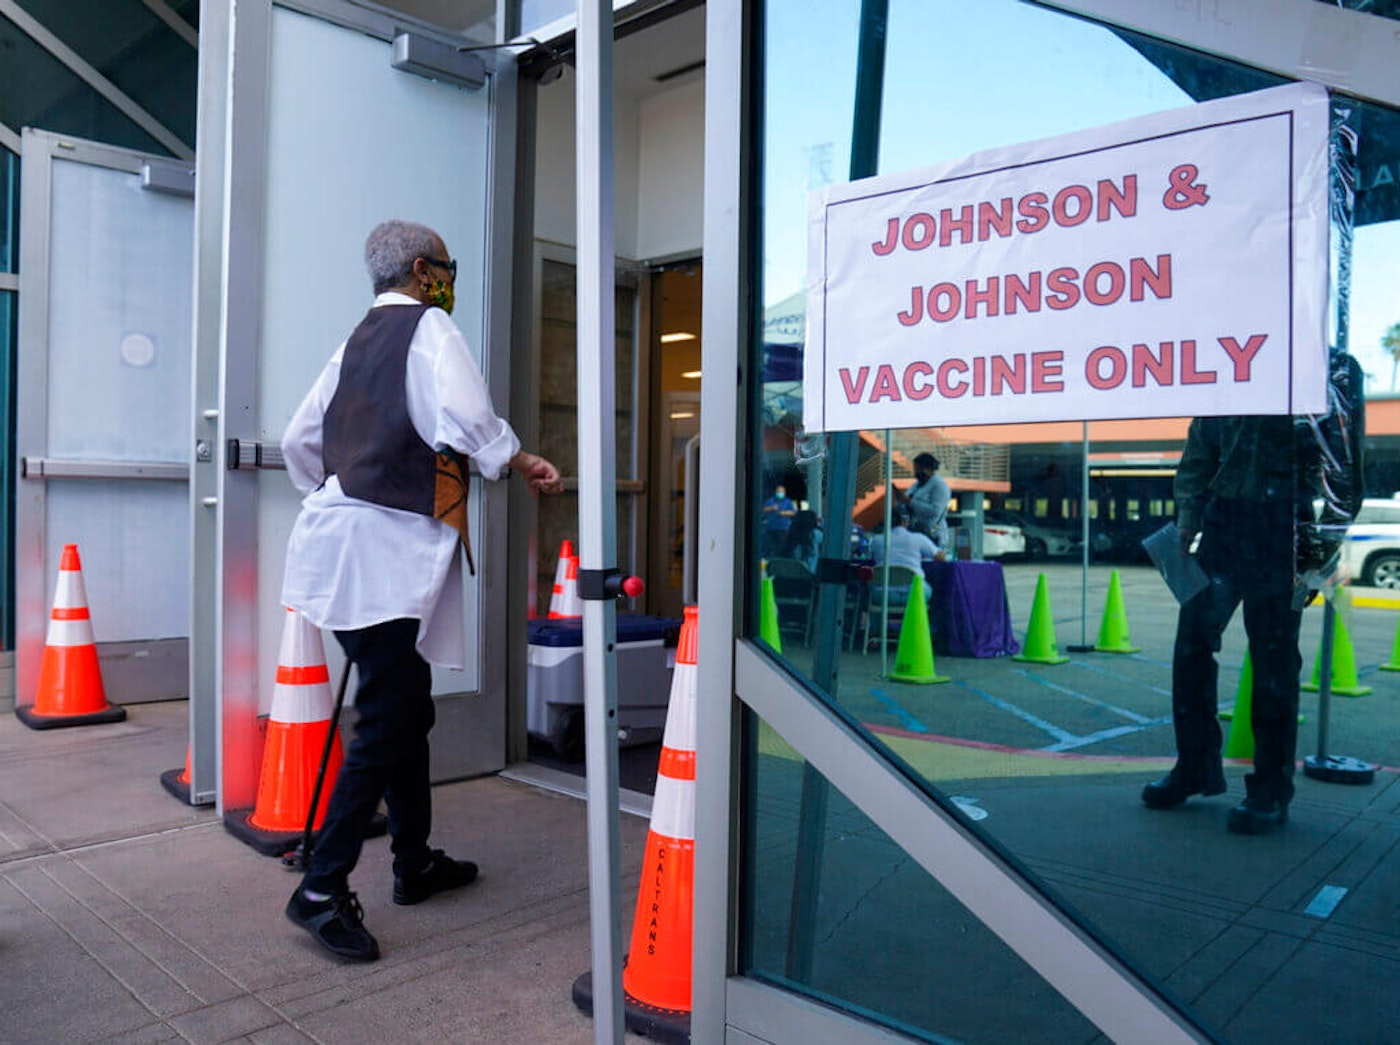 """People walk in to get their COVID-19 vaccine at the Baldwin Hills Crenshaw Plaza past a sign that says """"Johnson & Johnson vaccine only"""" in Los Angeles (Image via AP Photo/Damian Dovarganes, File)"""